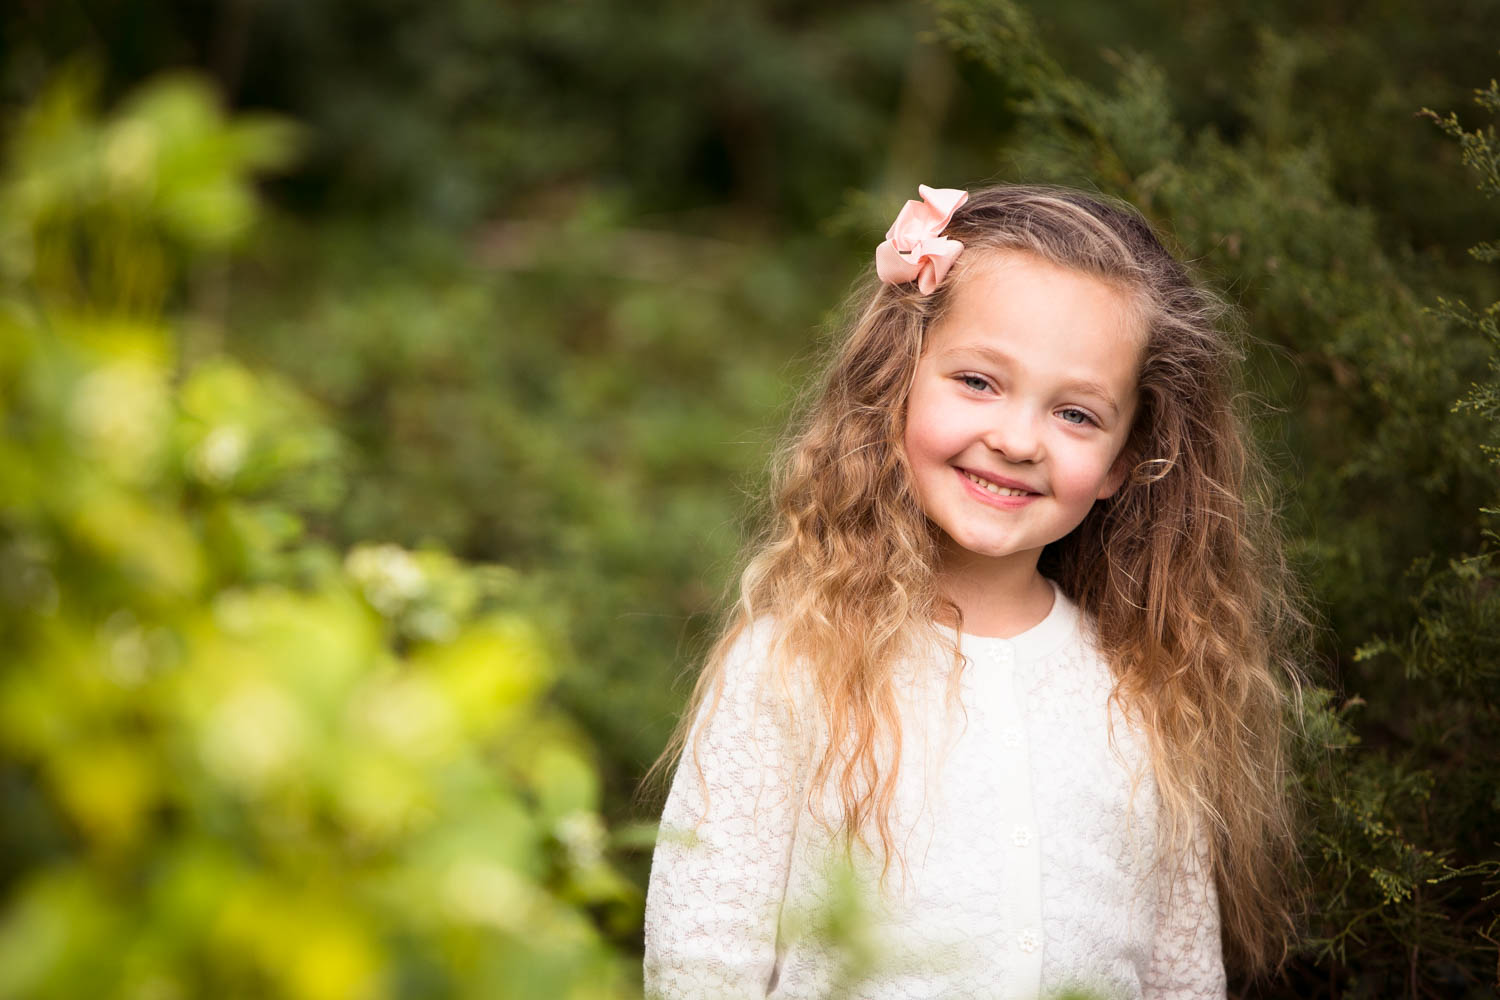 Child Portrait - Spring Photoshoot - smiling.jpg